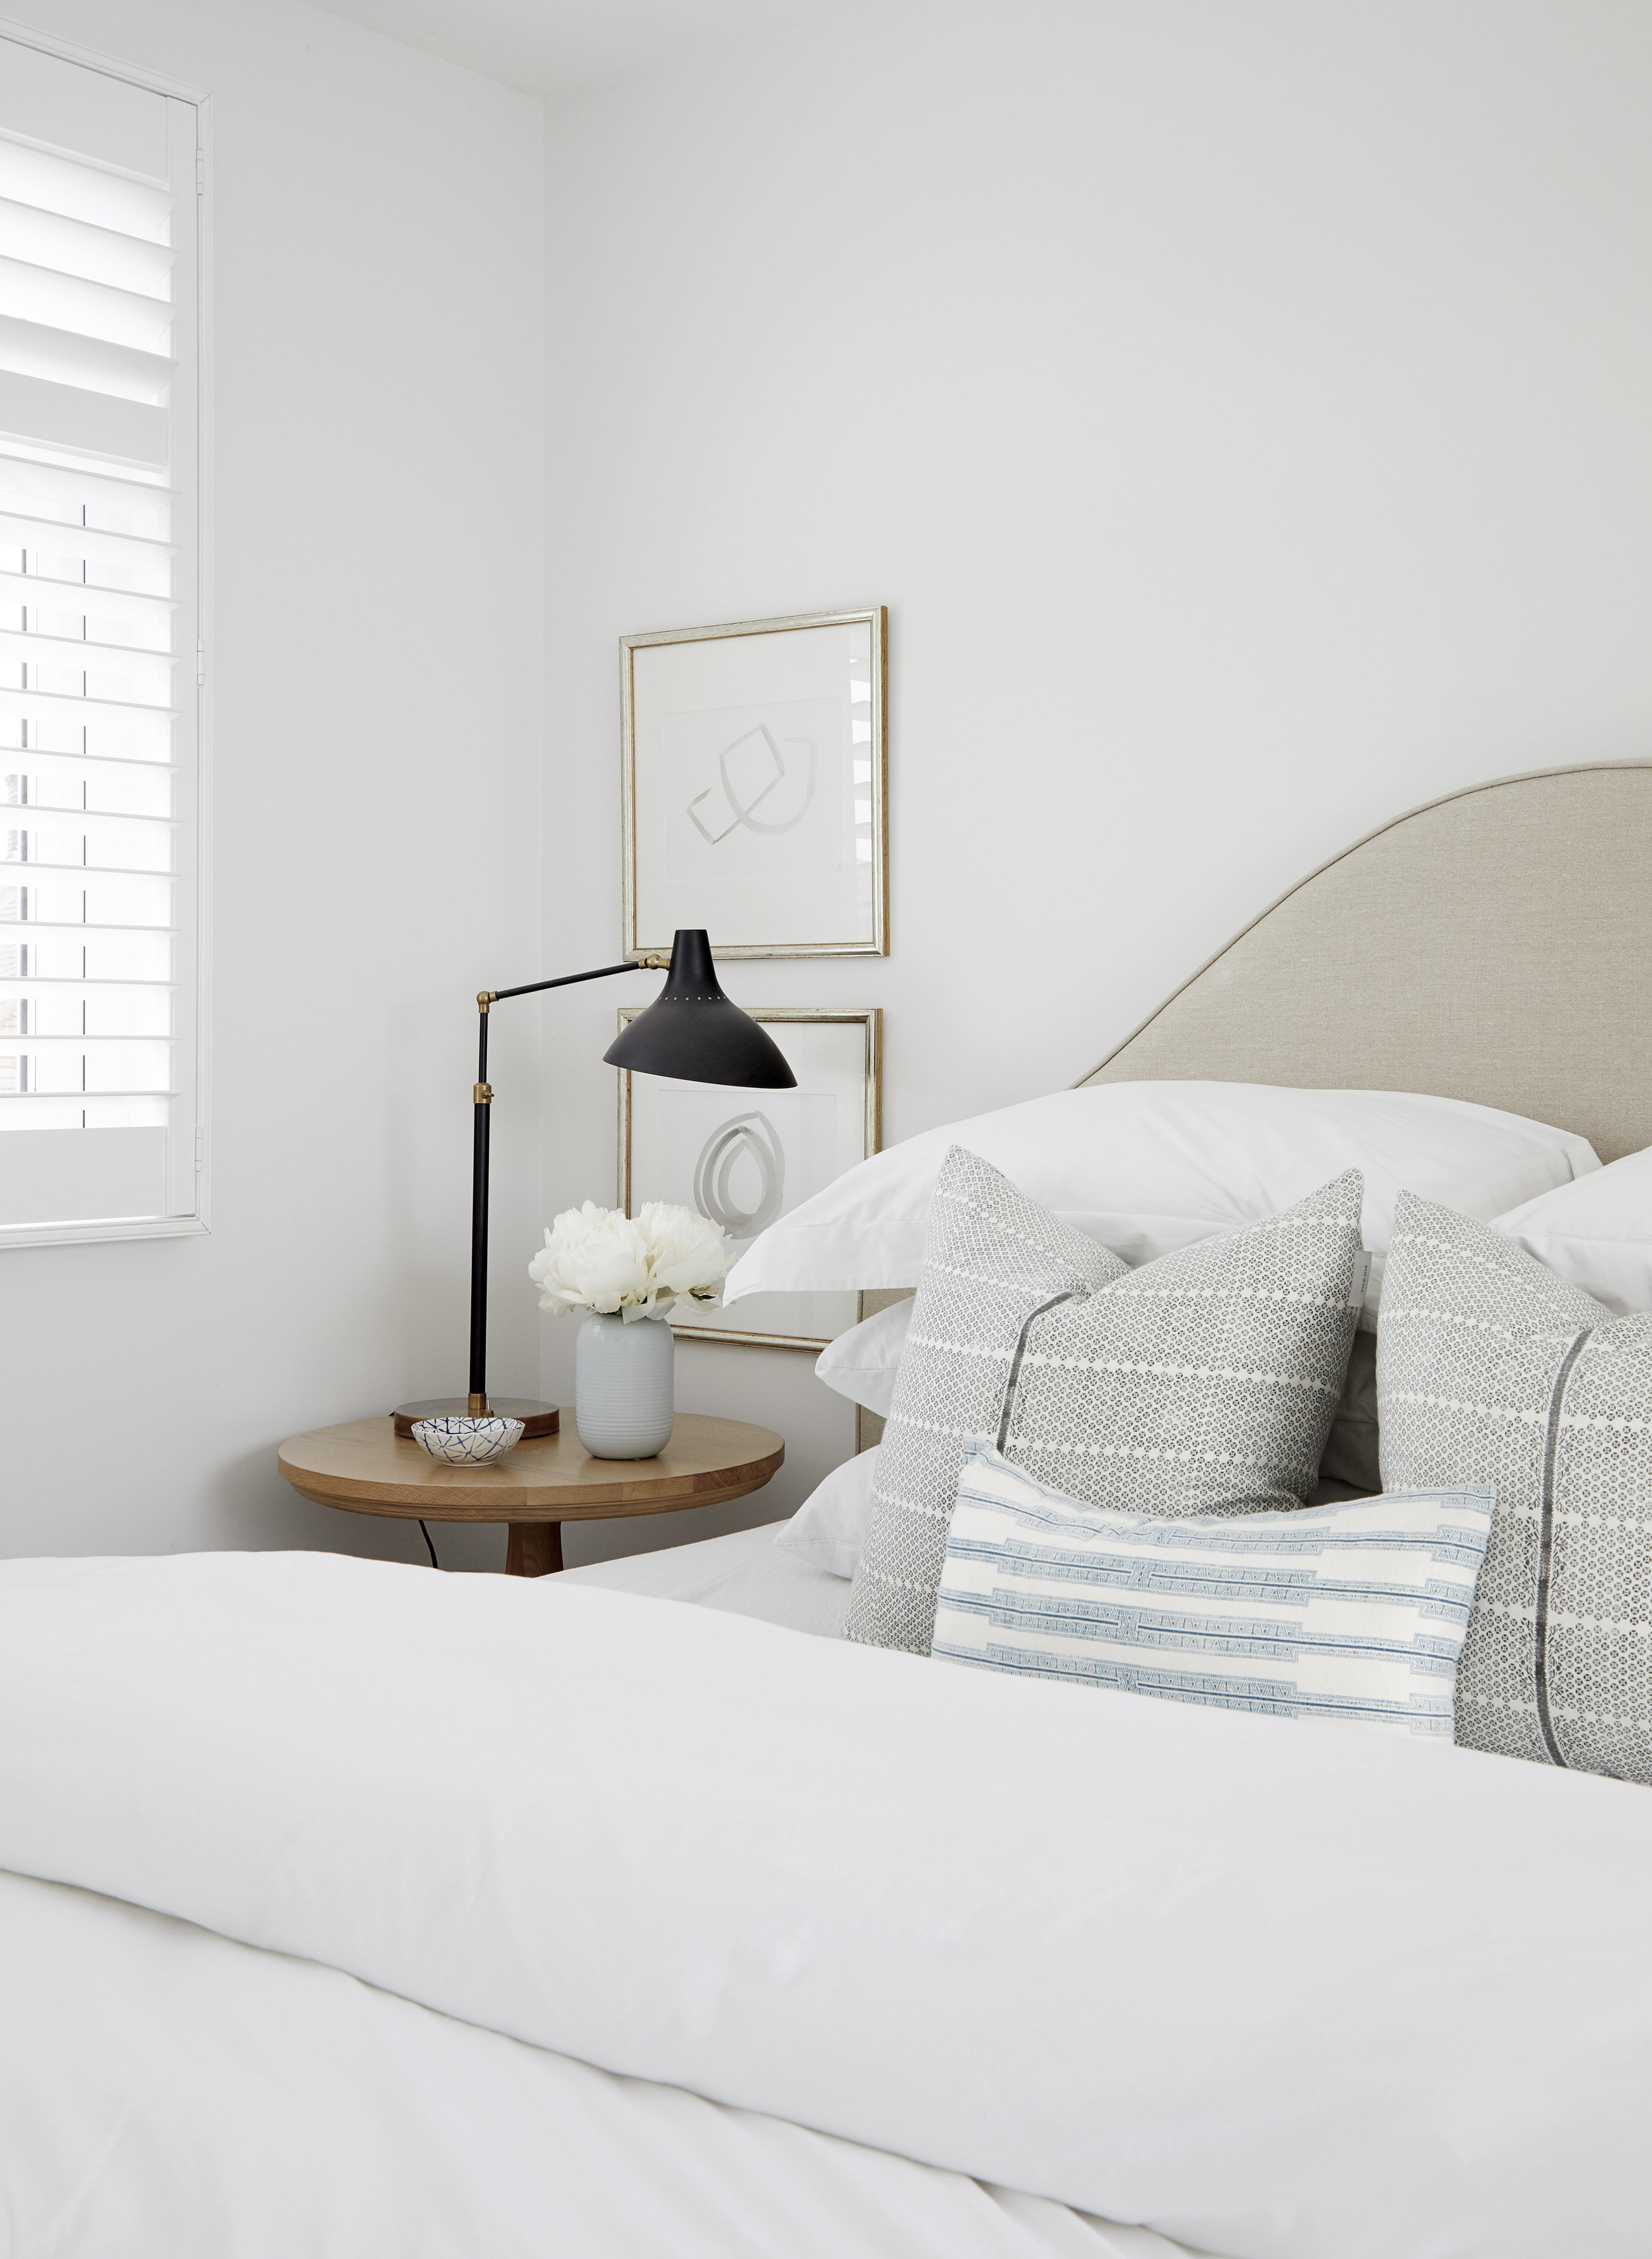 Tranquil Bedroom design by London based interior designer Donnie Wales Interiors